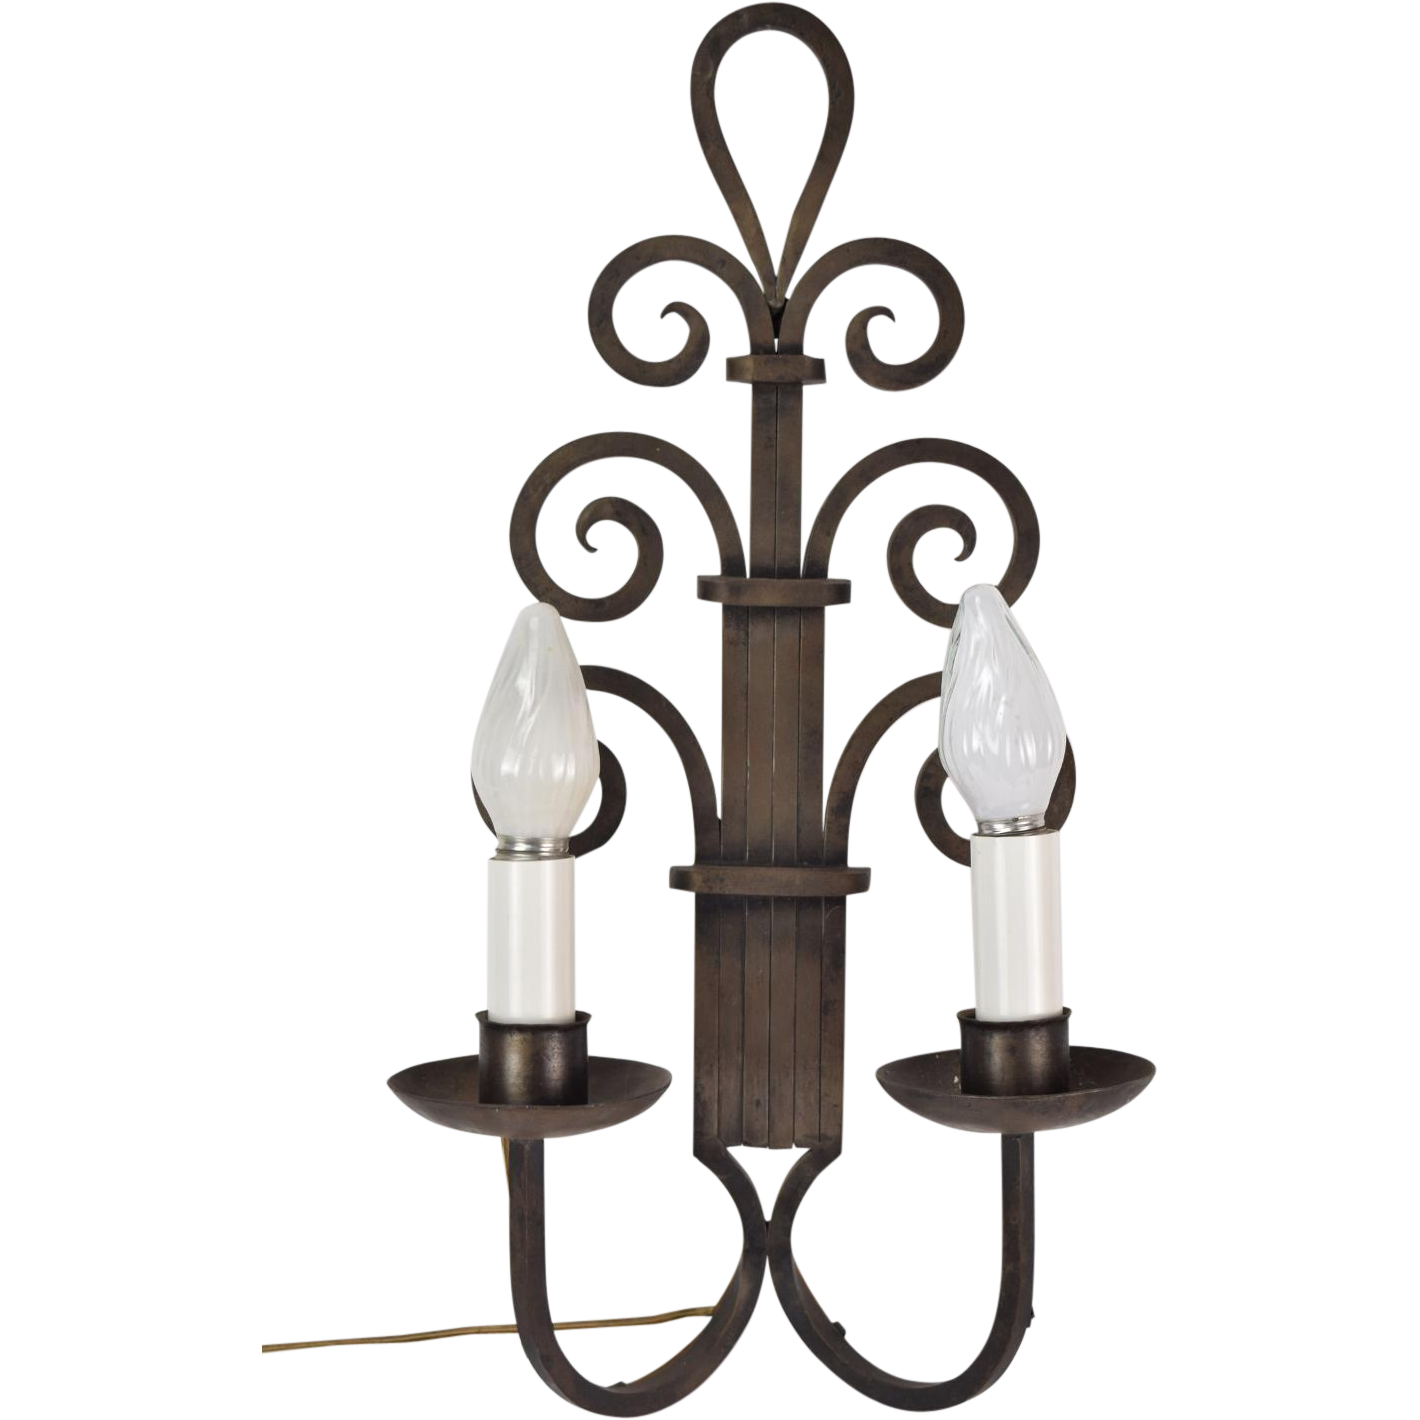 Large Wall Sconces Wrought Iron : Large 1930s Art Deco Gothic Wrought Iron Scroll Wall Sconce Light from colinreedantiques on Ruby ...